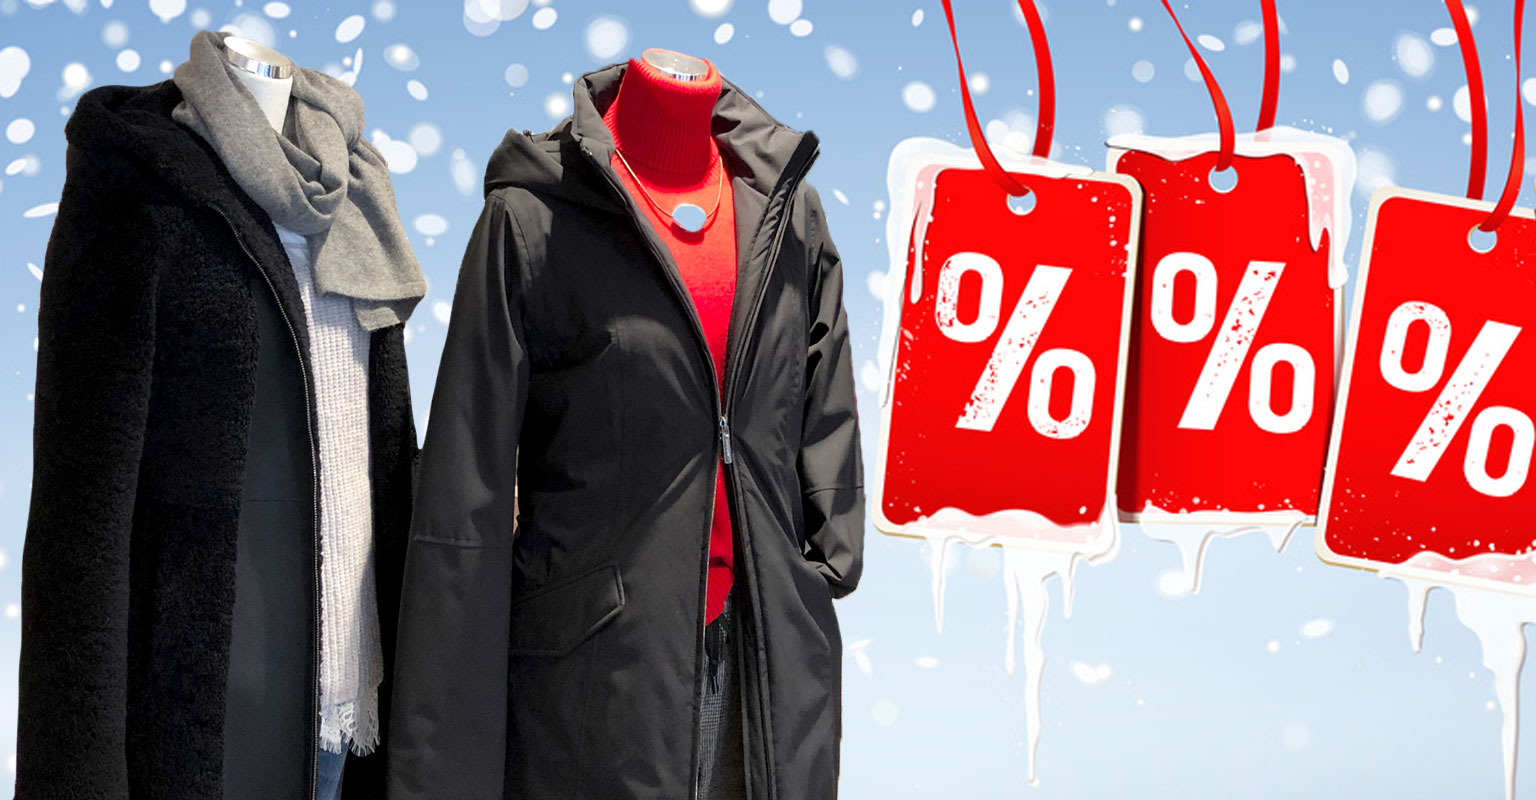 Mode-und-Design-winter-sale-jacken-pullover